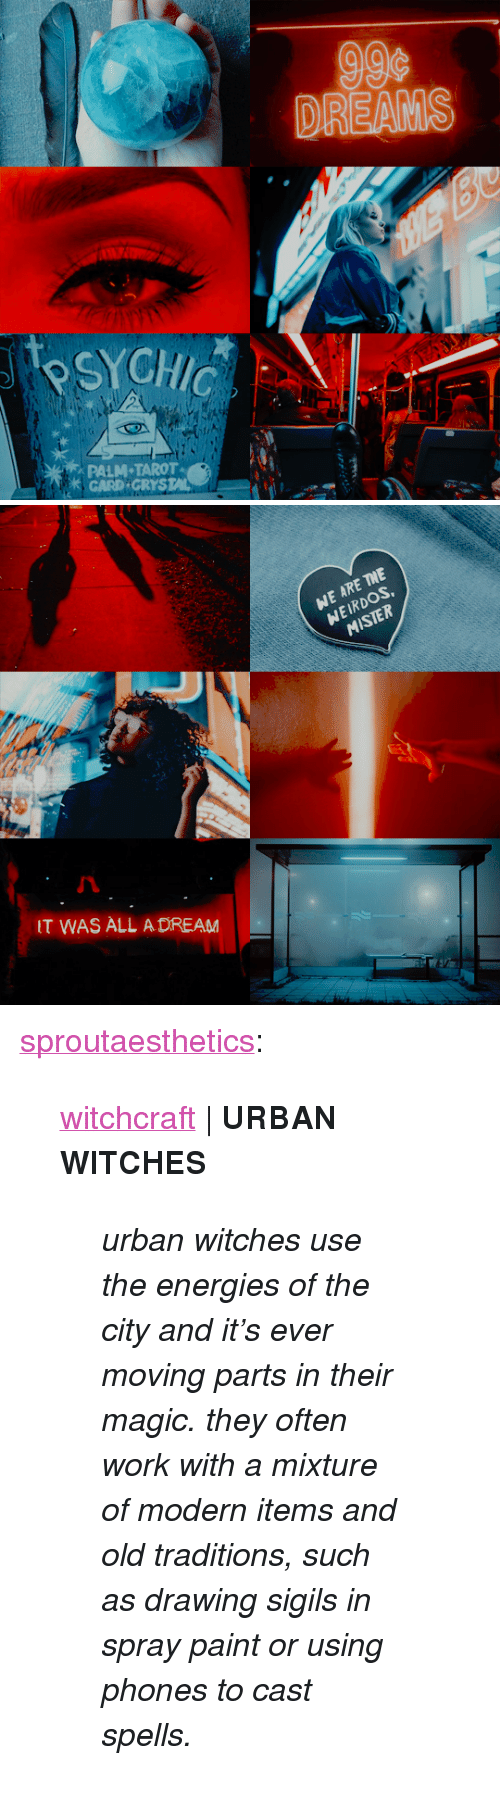 "A Dream, Tumblr, and Work: DR  PALM TAROT  GARD GRYSTAL   WE ARE THE  WEIRDOS  MISTER  T WAS ALL A DREAM <p><a href=""http://sproutaesthetics.tumblr.com/post/164901391712/witchcraft-urban-witches-urban-witches-use-the"" class=""tumblr_blog"">sproutaesthetics</a>:</p> <blockquote> <p><a href=""http://sproutaesthetics.tumblr.com/tagged/witchcraft"">witchcraft</a> 